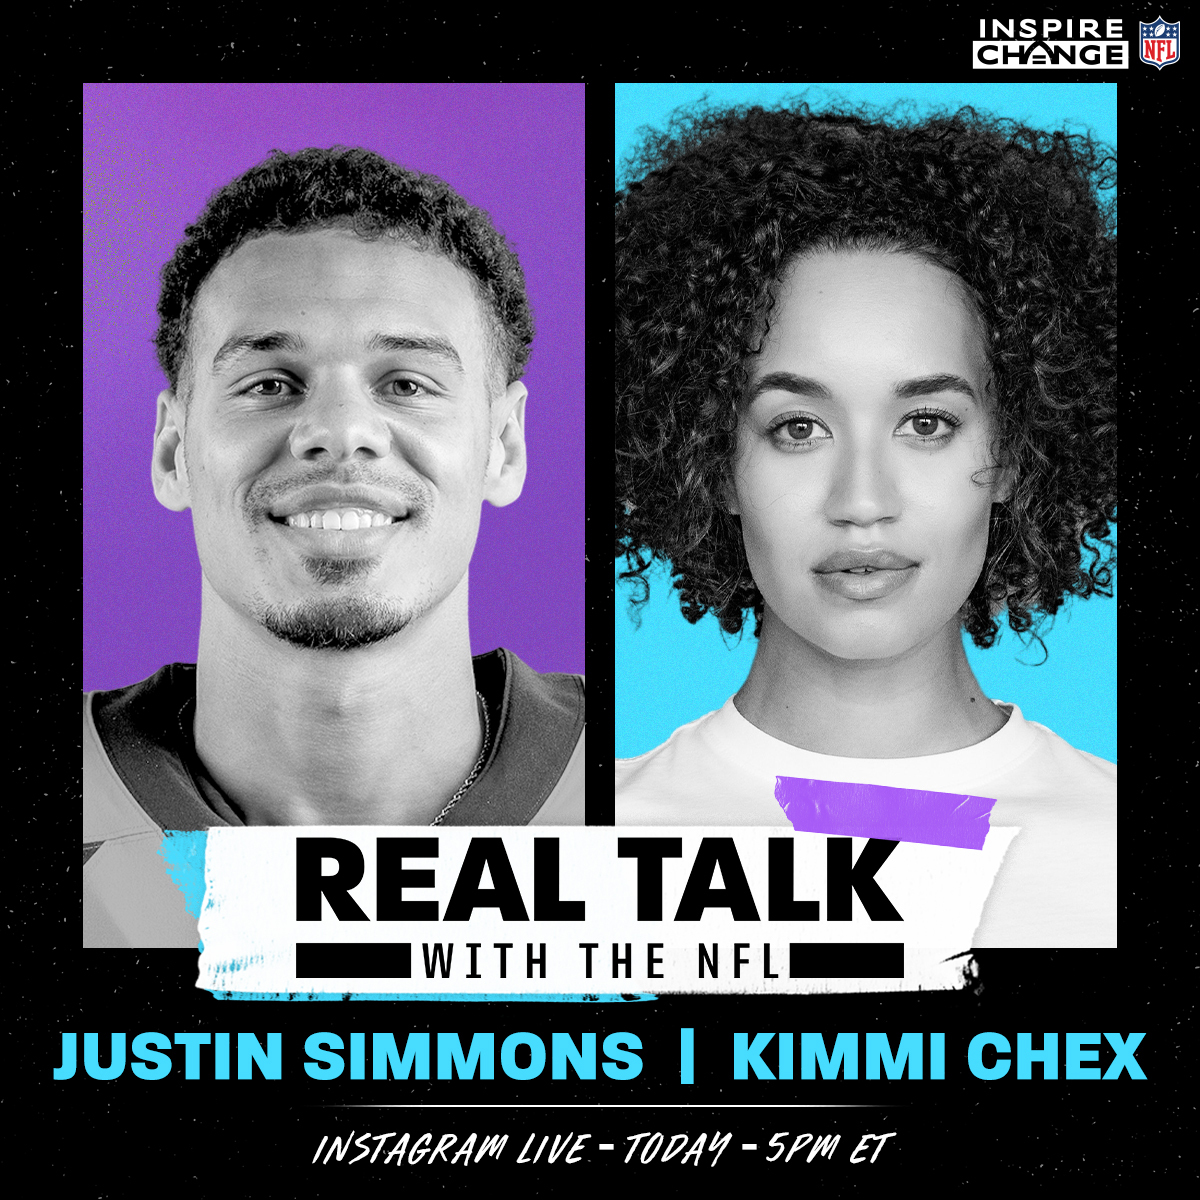 He's a #WPMOY nominee. A community and social justice leader.  @Broncos safety @jsimms1119 joins @kimmichex TODAY at 5 p.m. ET on our IG Live:  #InspireChange